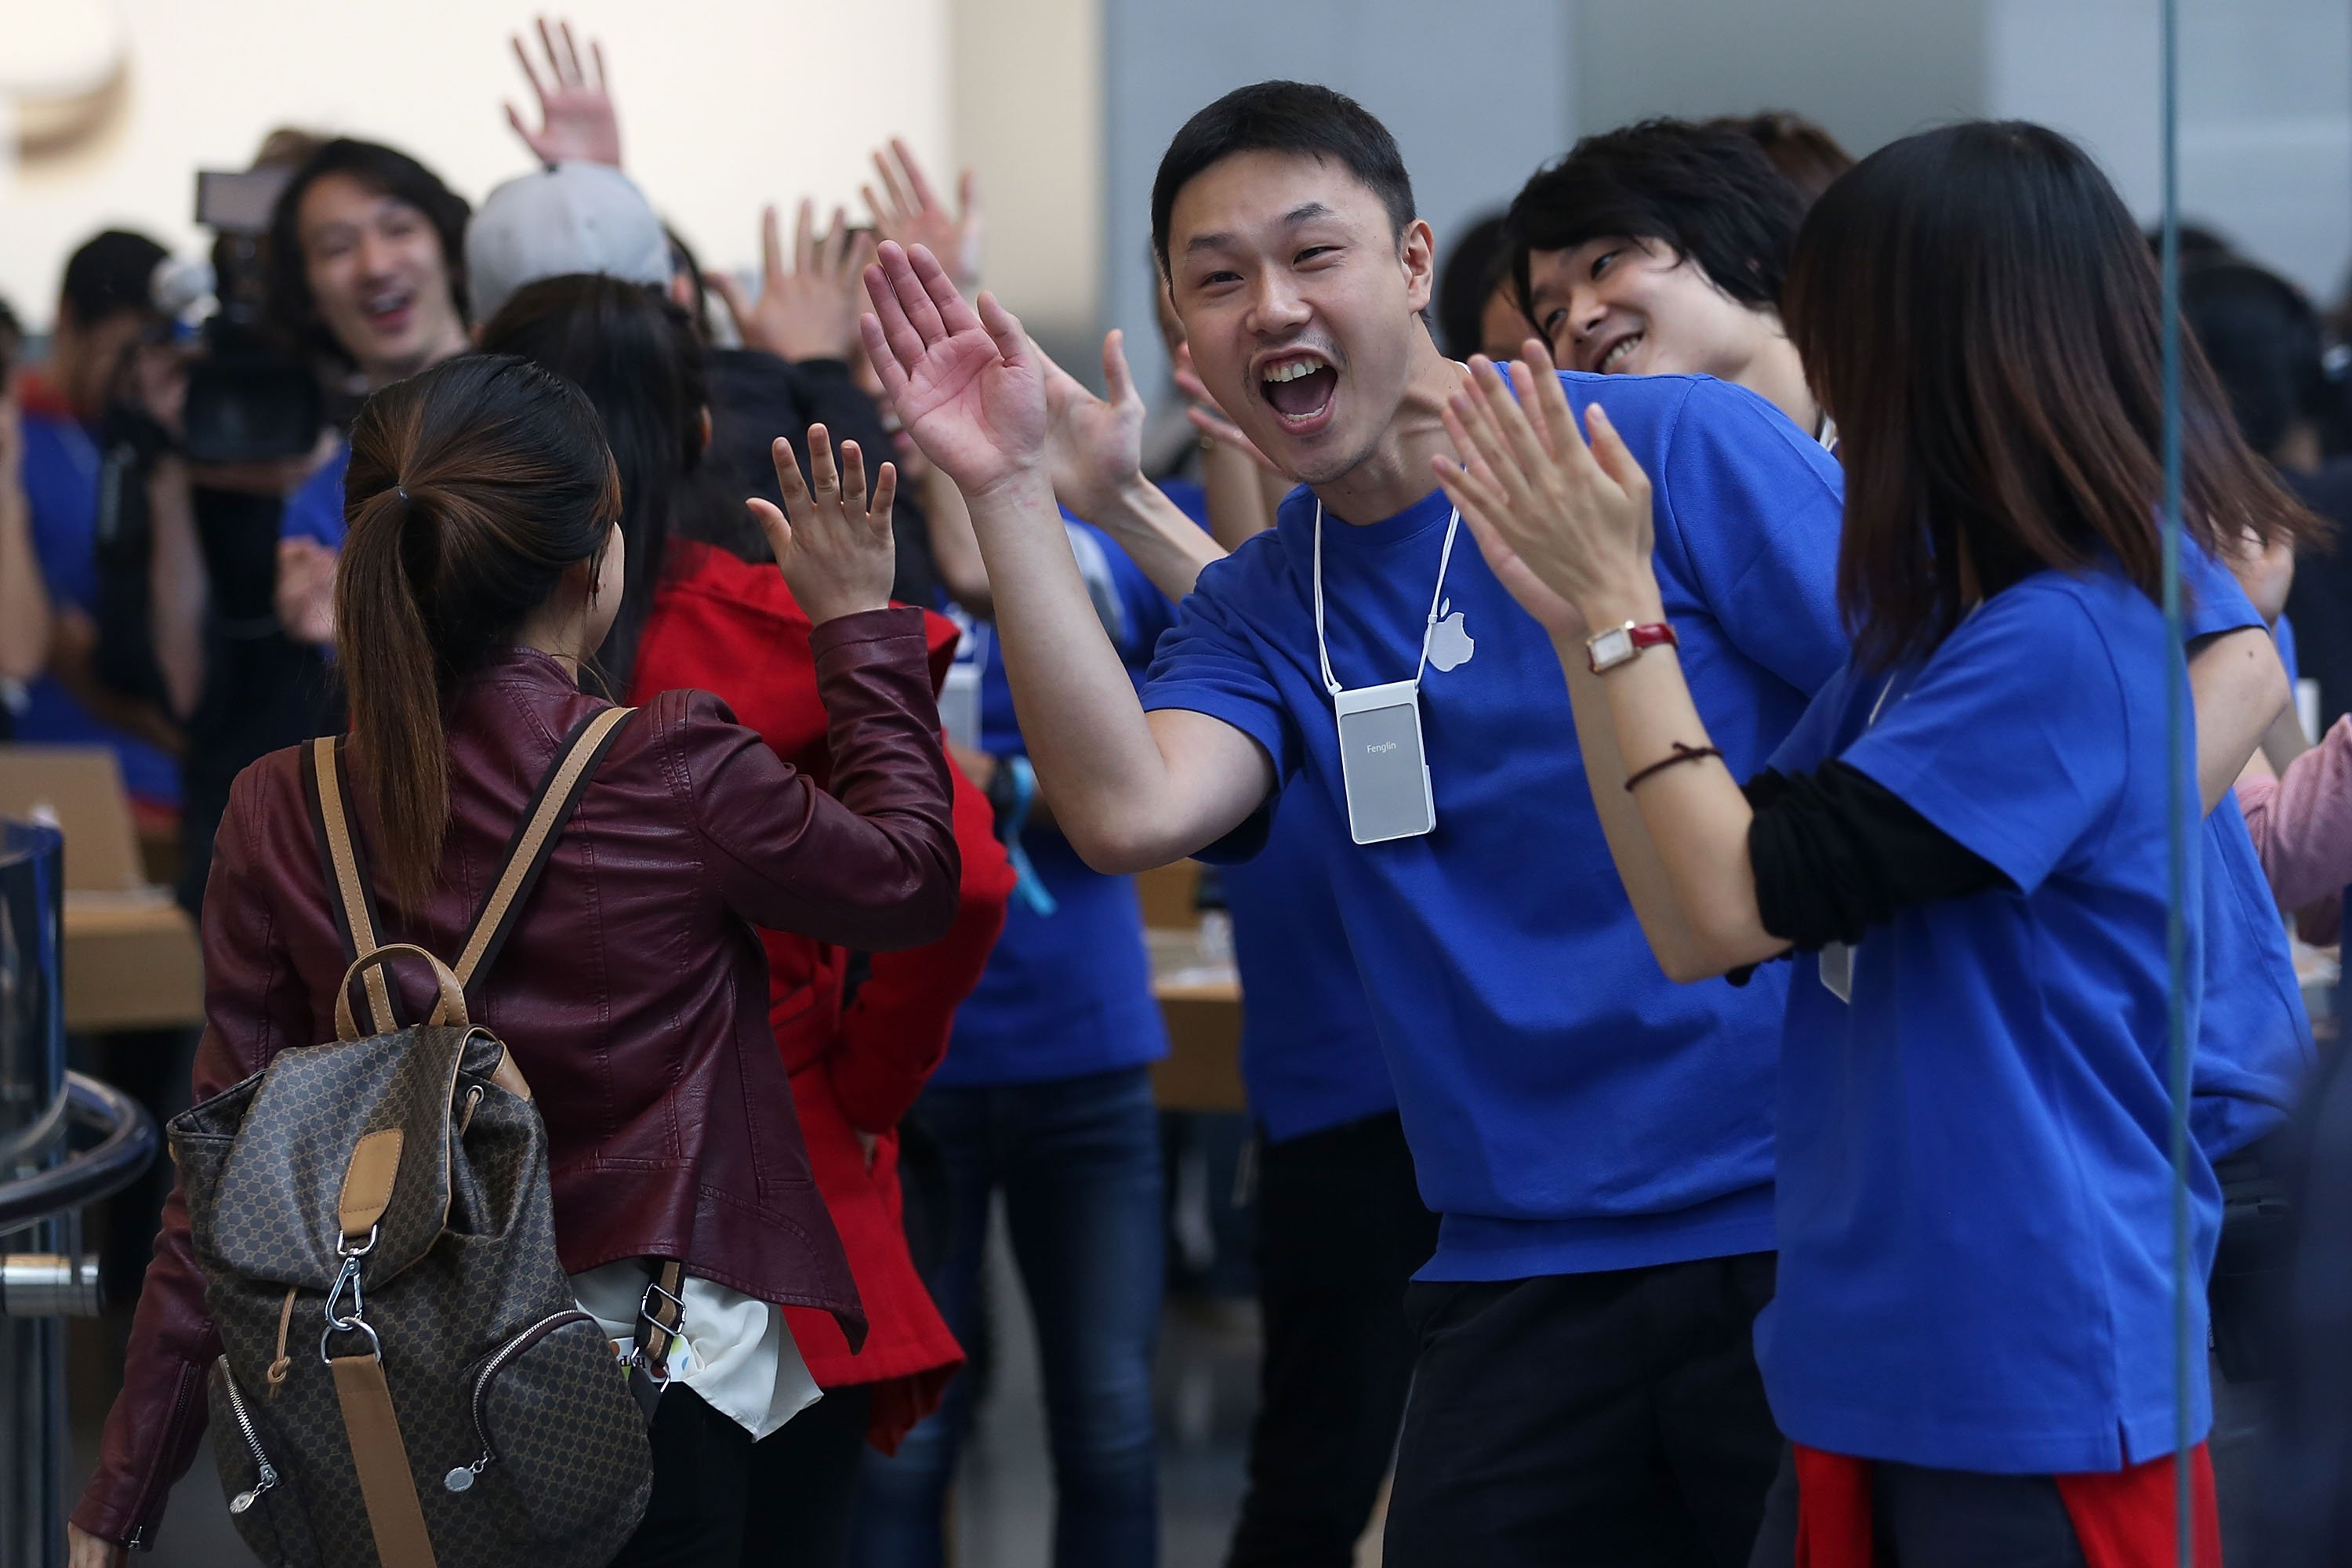 Apple store staff high five customers as they enter an store in Tokyo on Sept. 19, 2014.